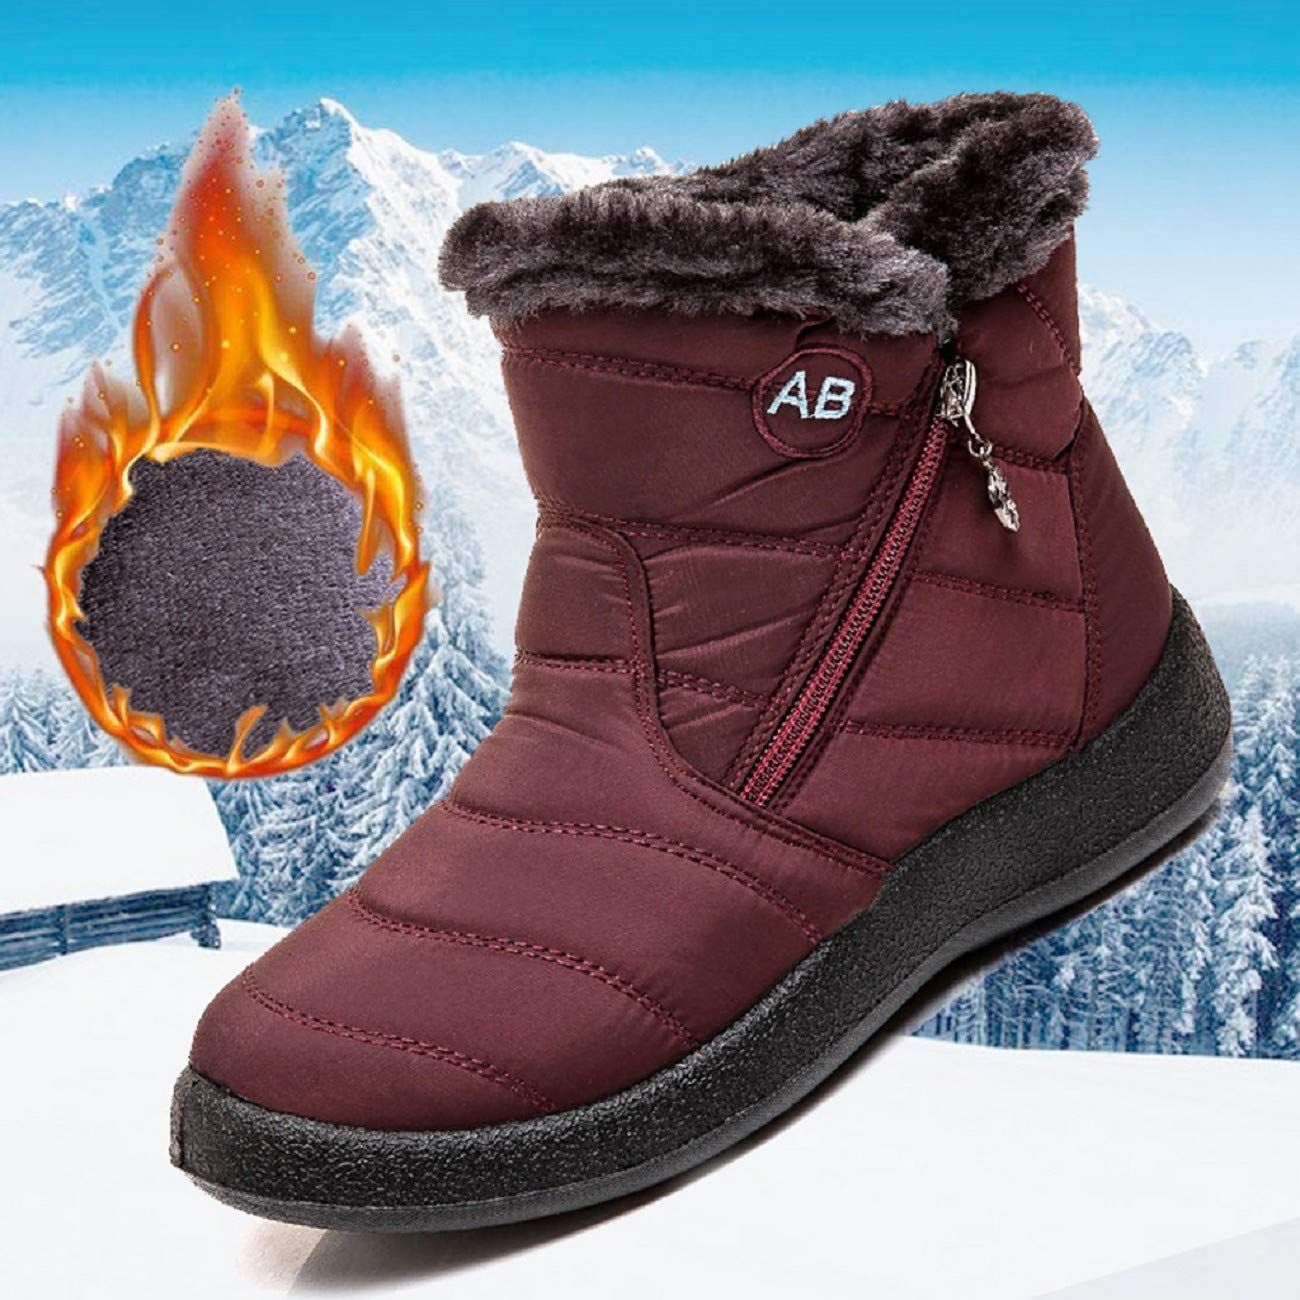 FAPIZI Womens Snow Boots Winter Fur Lining Warm Ankle Boots Outdoor Waterproof Slip on Lightweight Sneakers Shoes